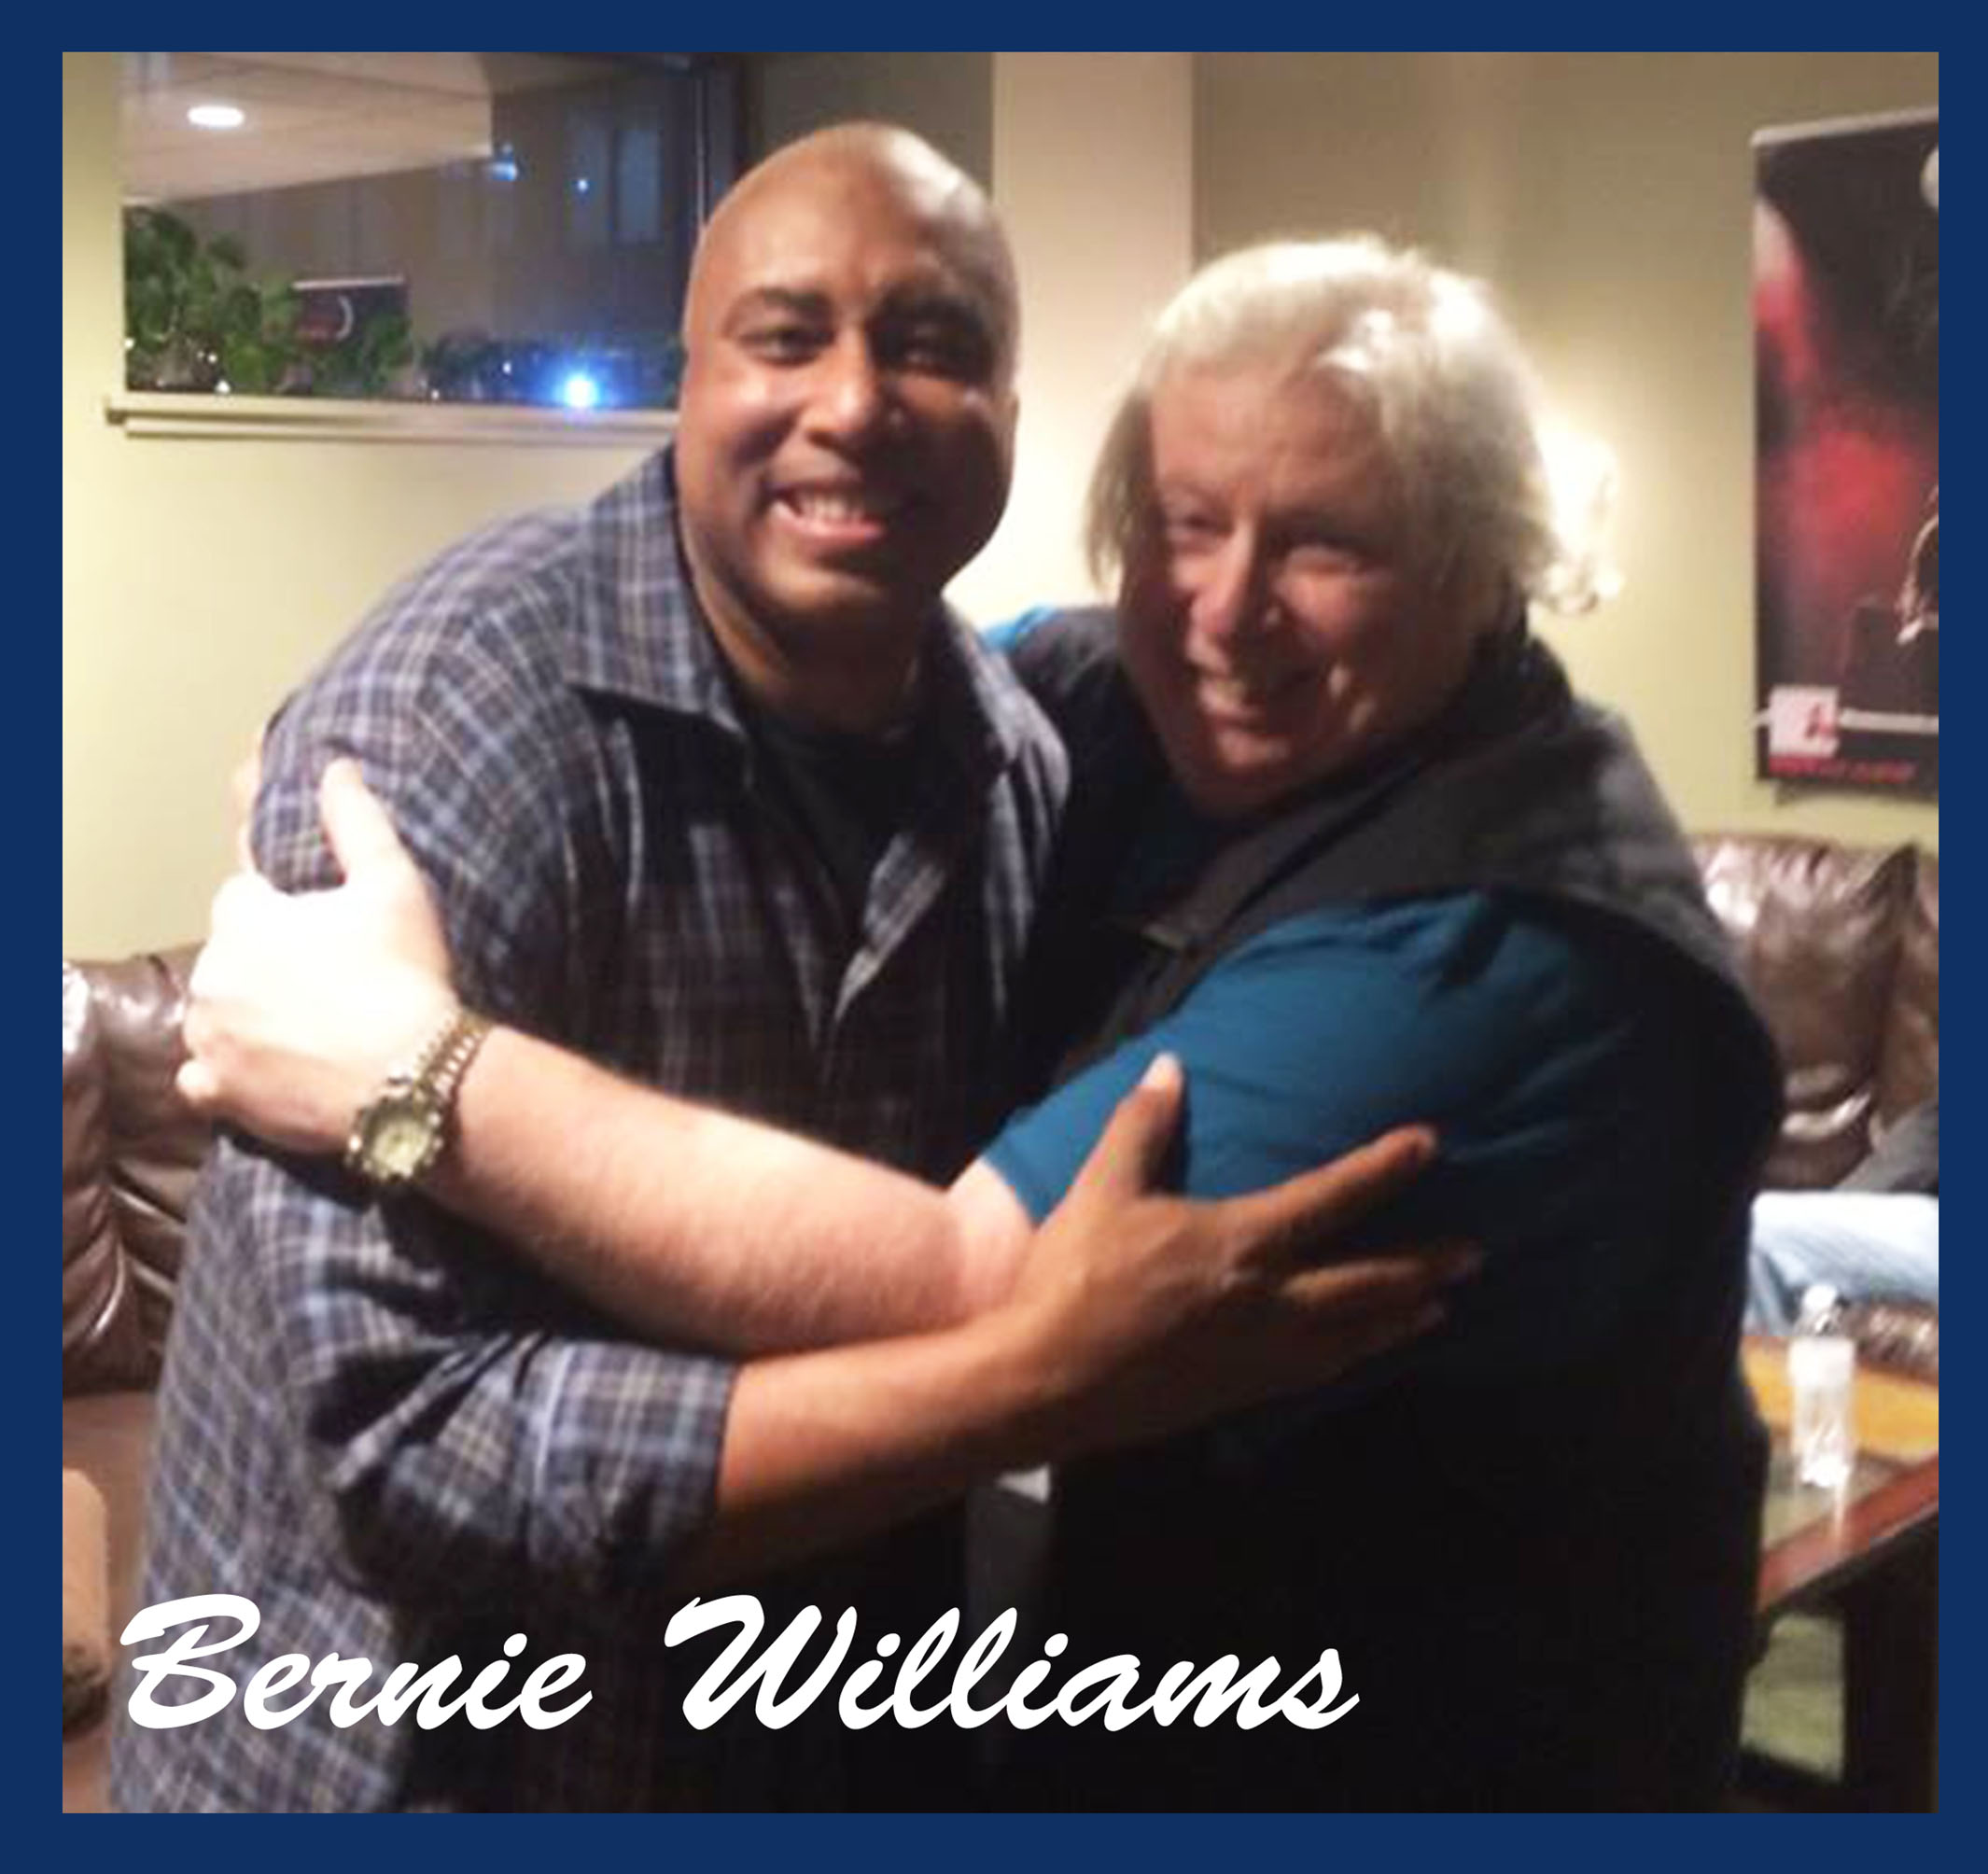 Bernie-Williams.jpg